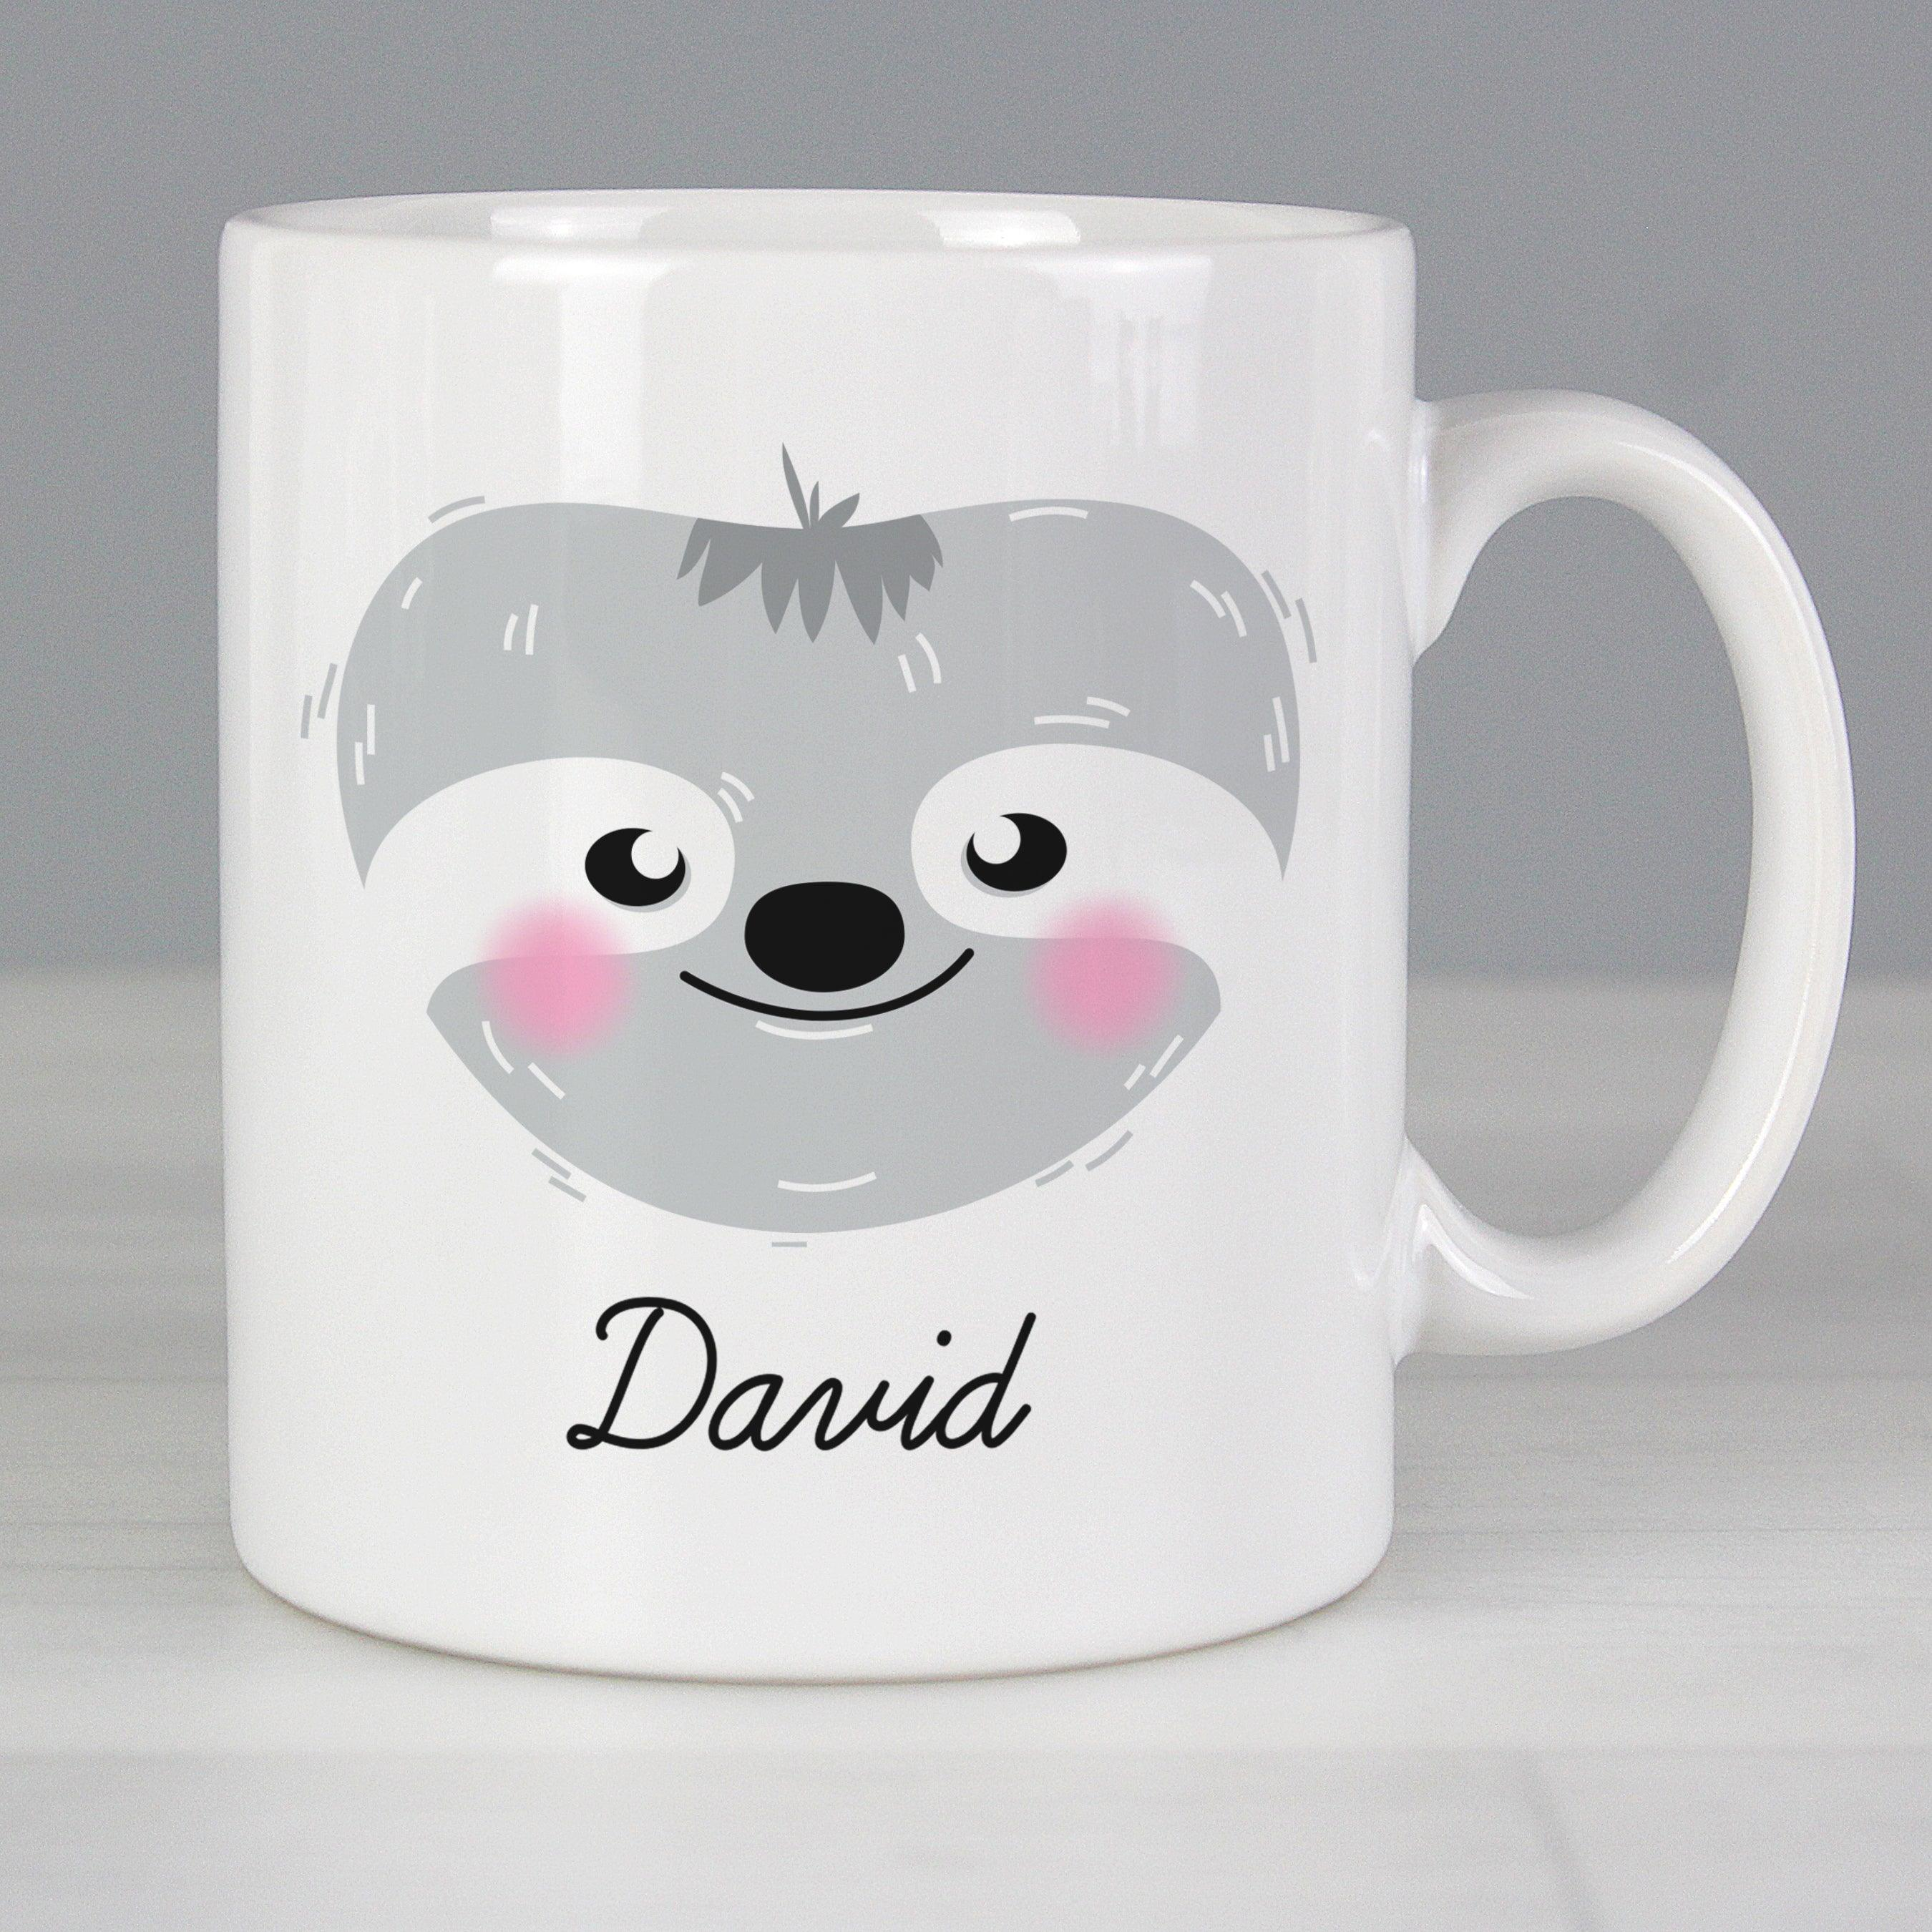 Personalised Cute Sloth Face Ceramic Mug (4923517075542)